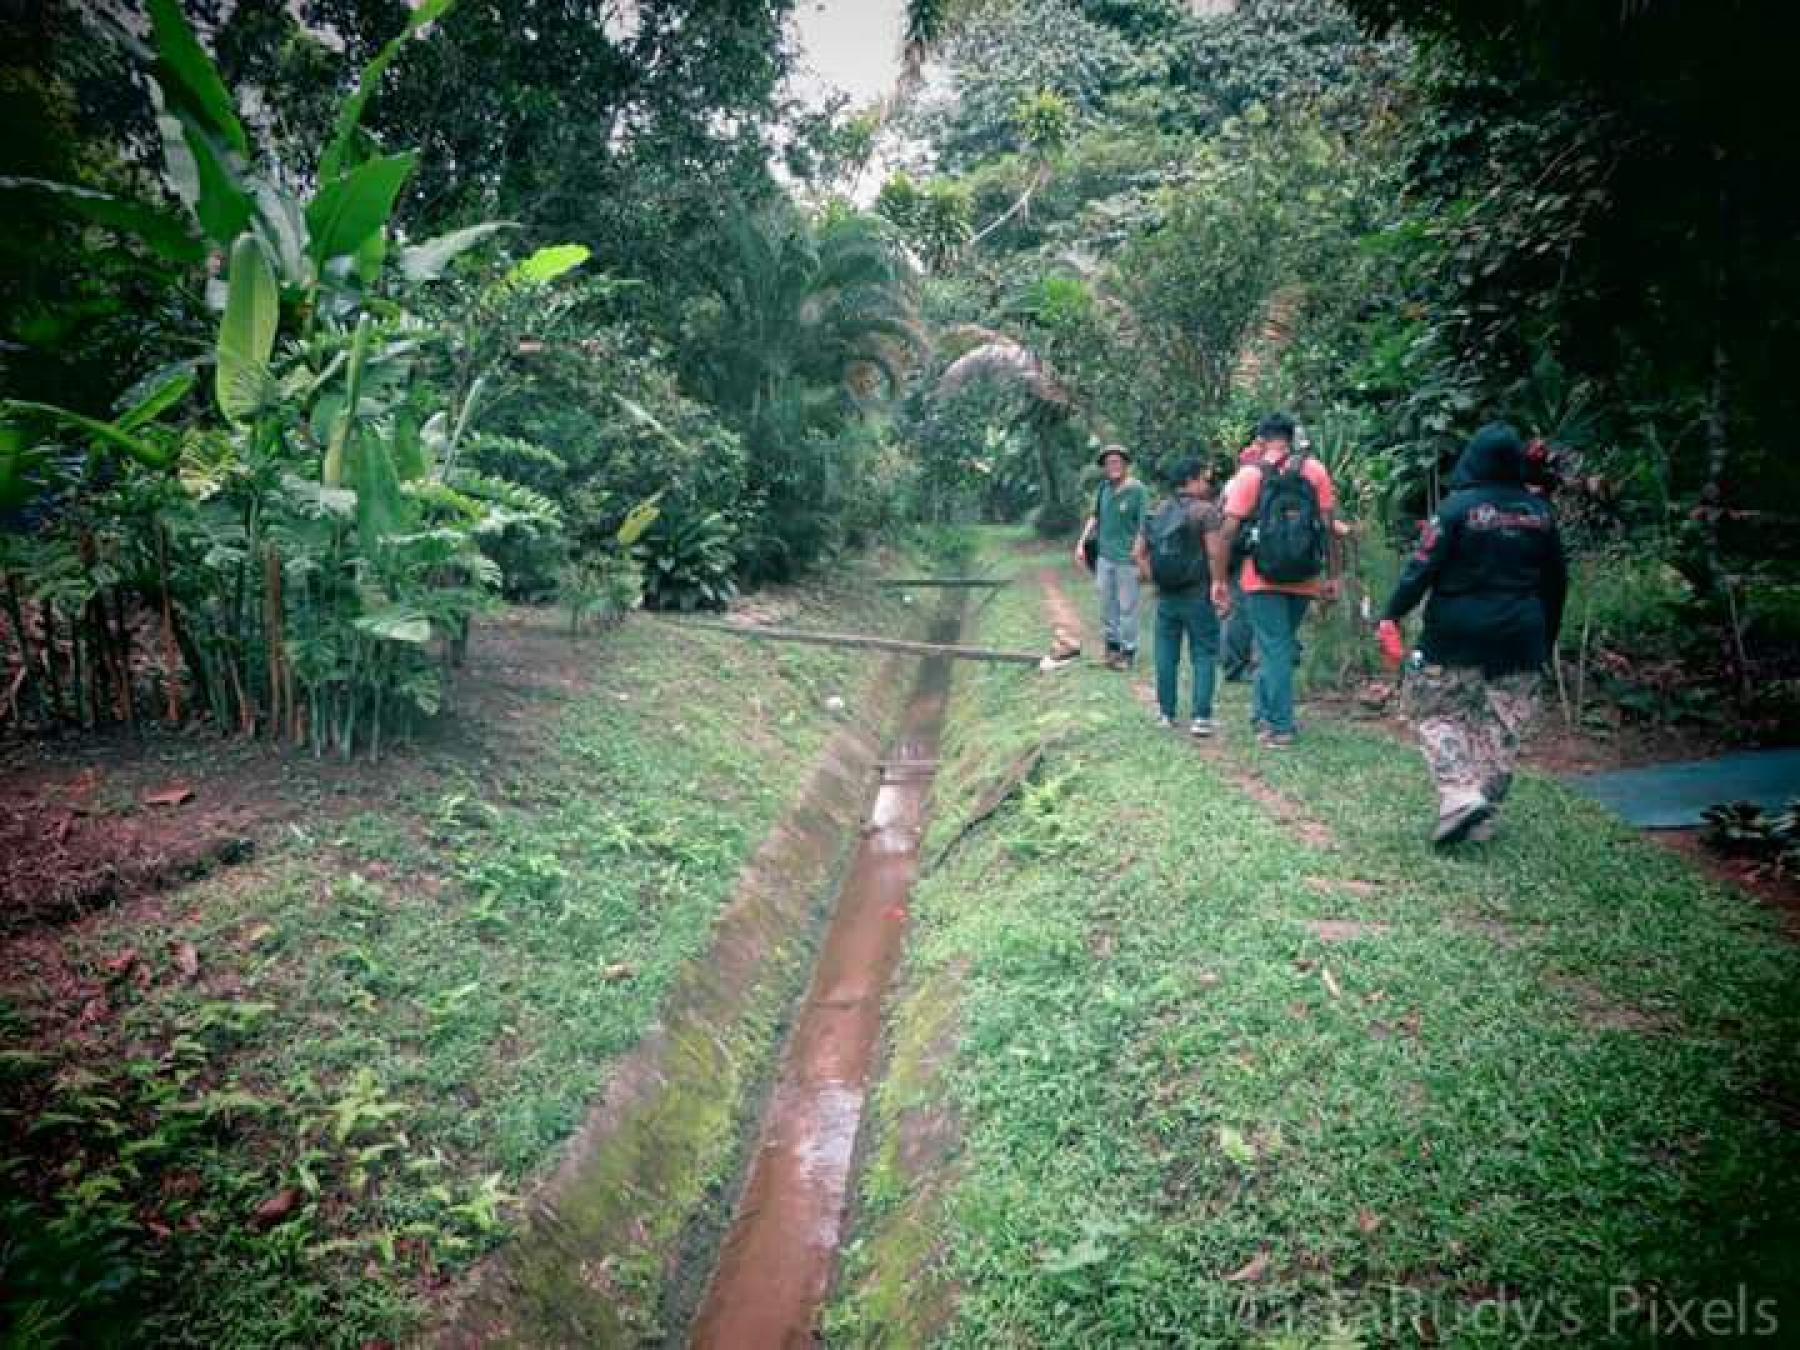 Let's discover vast and beautiful Bukit Brown on a jungle heritage walk starting at Bukit Brown Cemetery Singapore